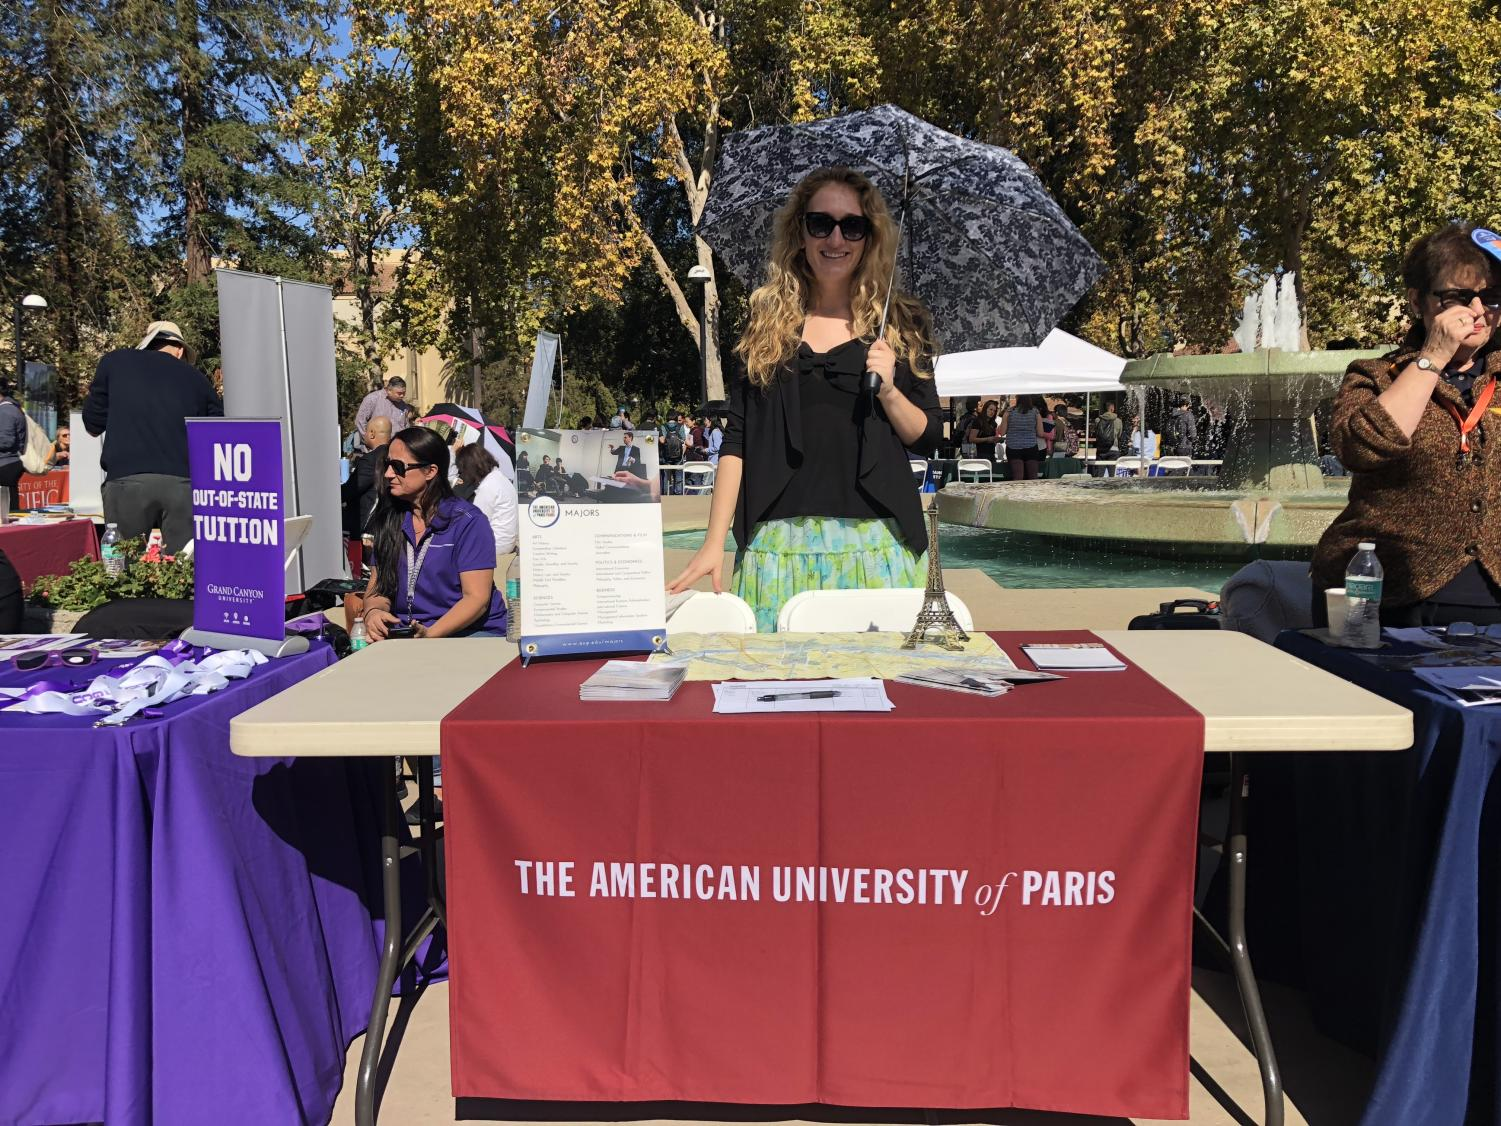 Jen Boucher, representative for The American University of Paris stands by the university's booth during Transfer Day.